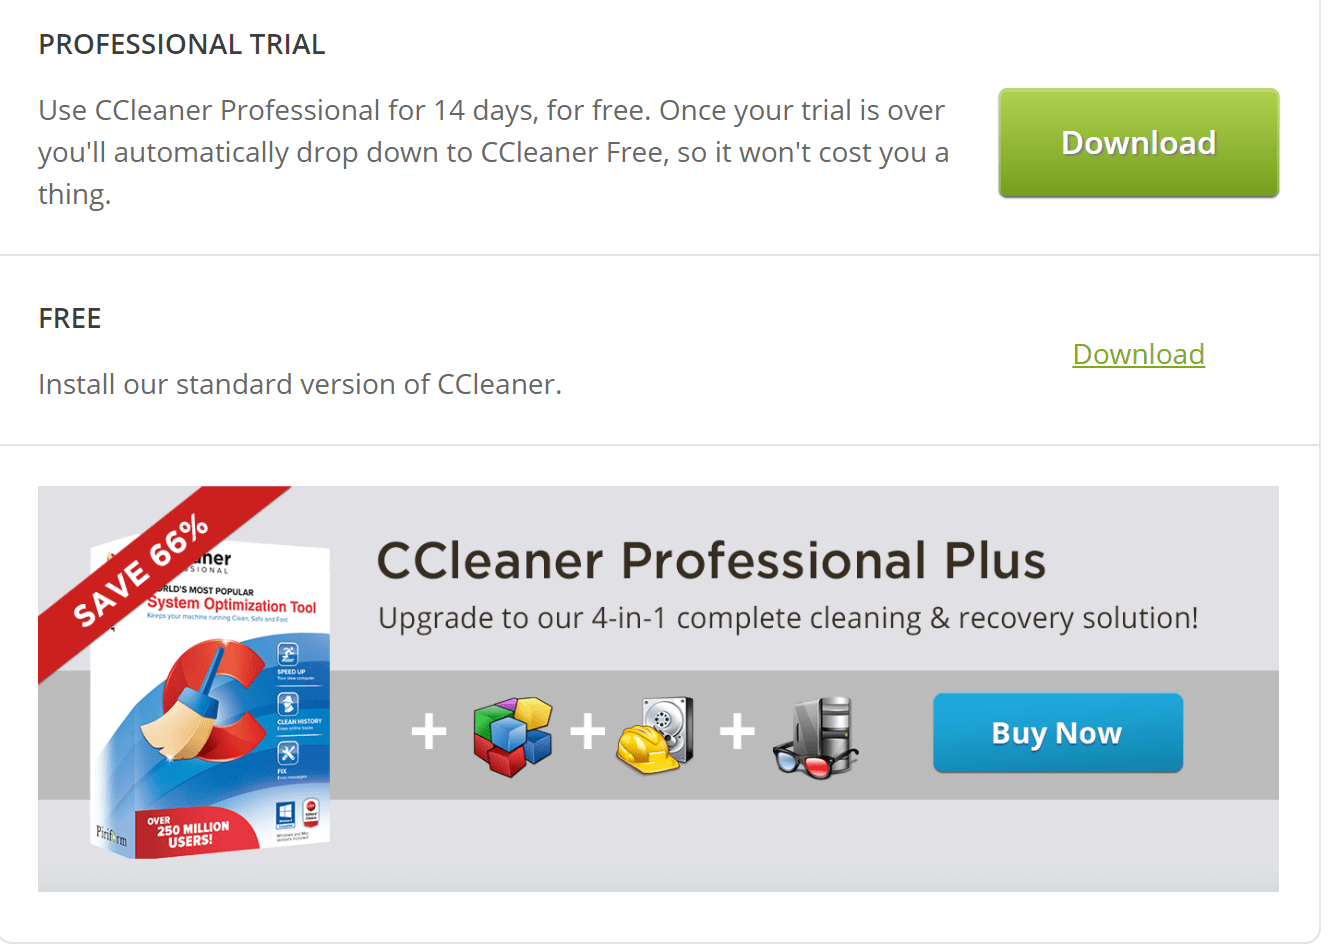 Ccleaner professional plus coupon code